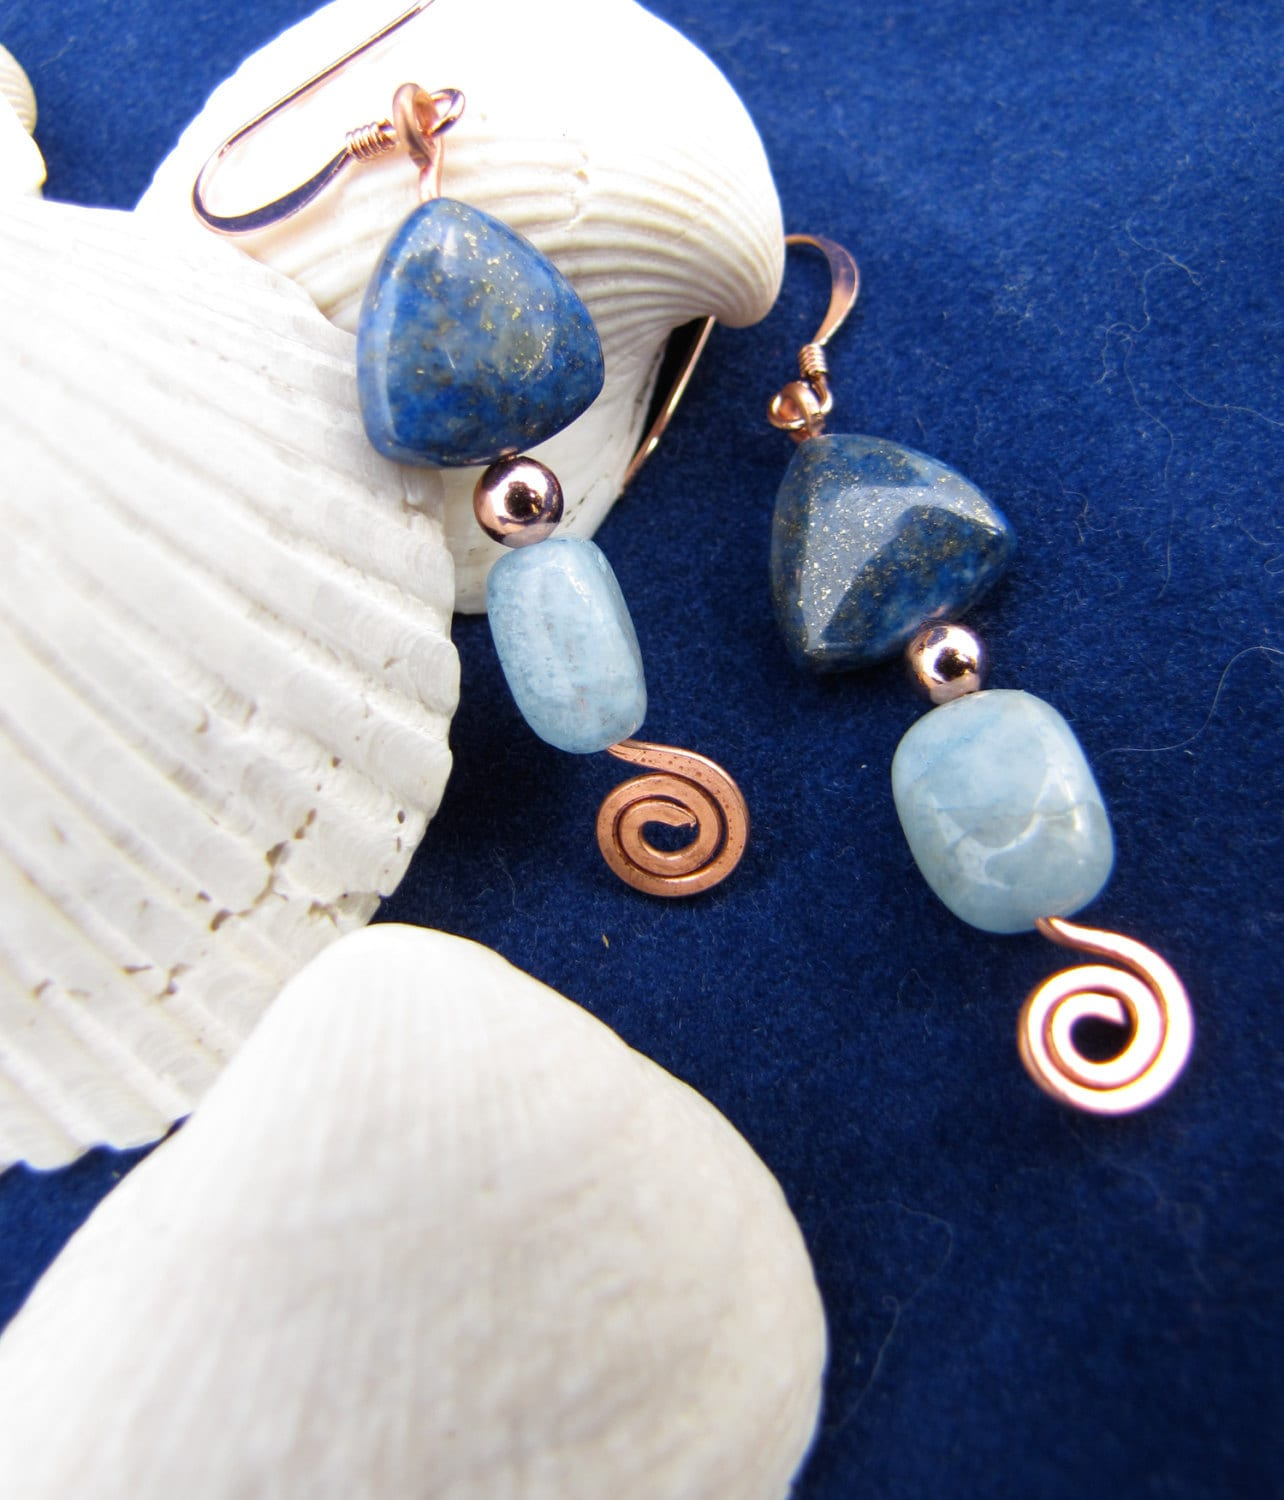 Philosopher's Stone Earrings: triangular deep blue lapis lazuli (with significant copper-colored inclusions), shiny copper spacer bead, long rectangular light-blue aquamarine, with a hammered-flat copper wire spiral at the bottom of each earring.